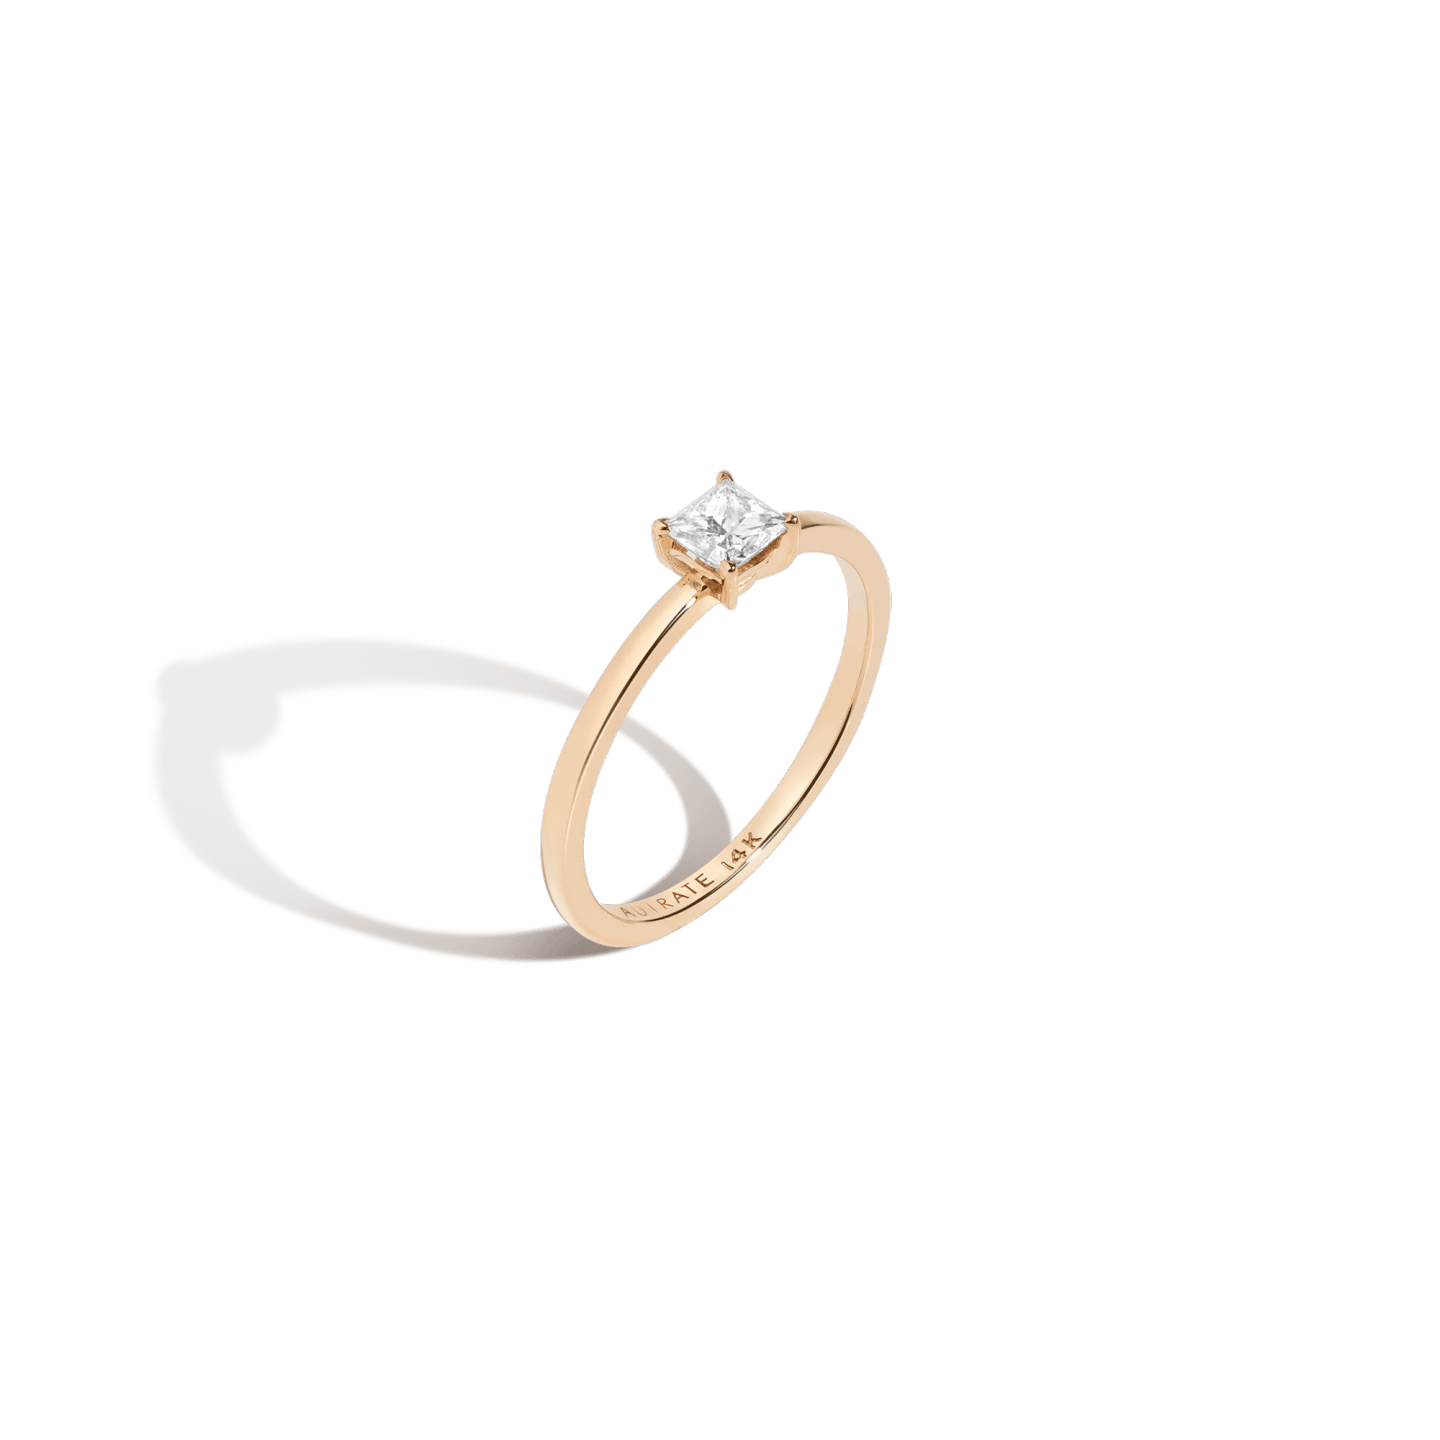 Engraved Fine Jewelry - AUrate Large Diamond Solitaire Ring